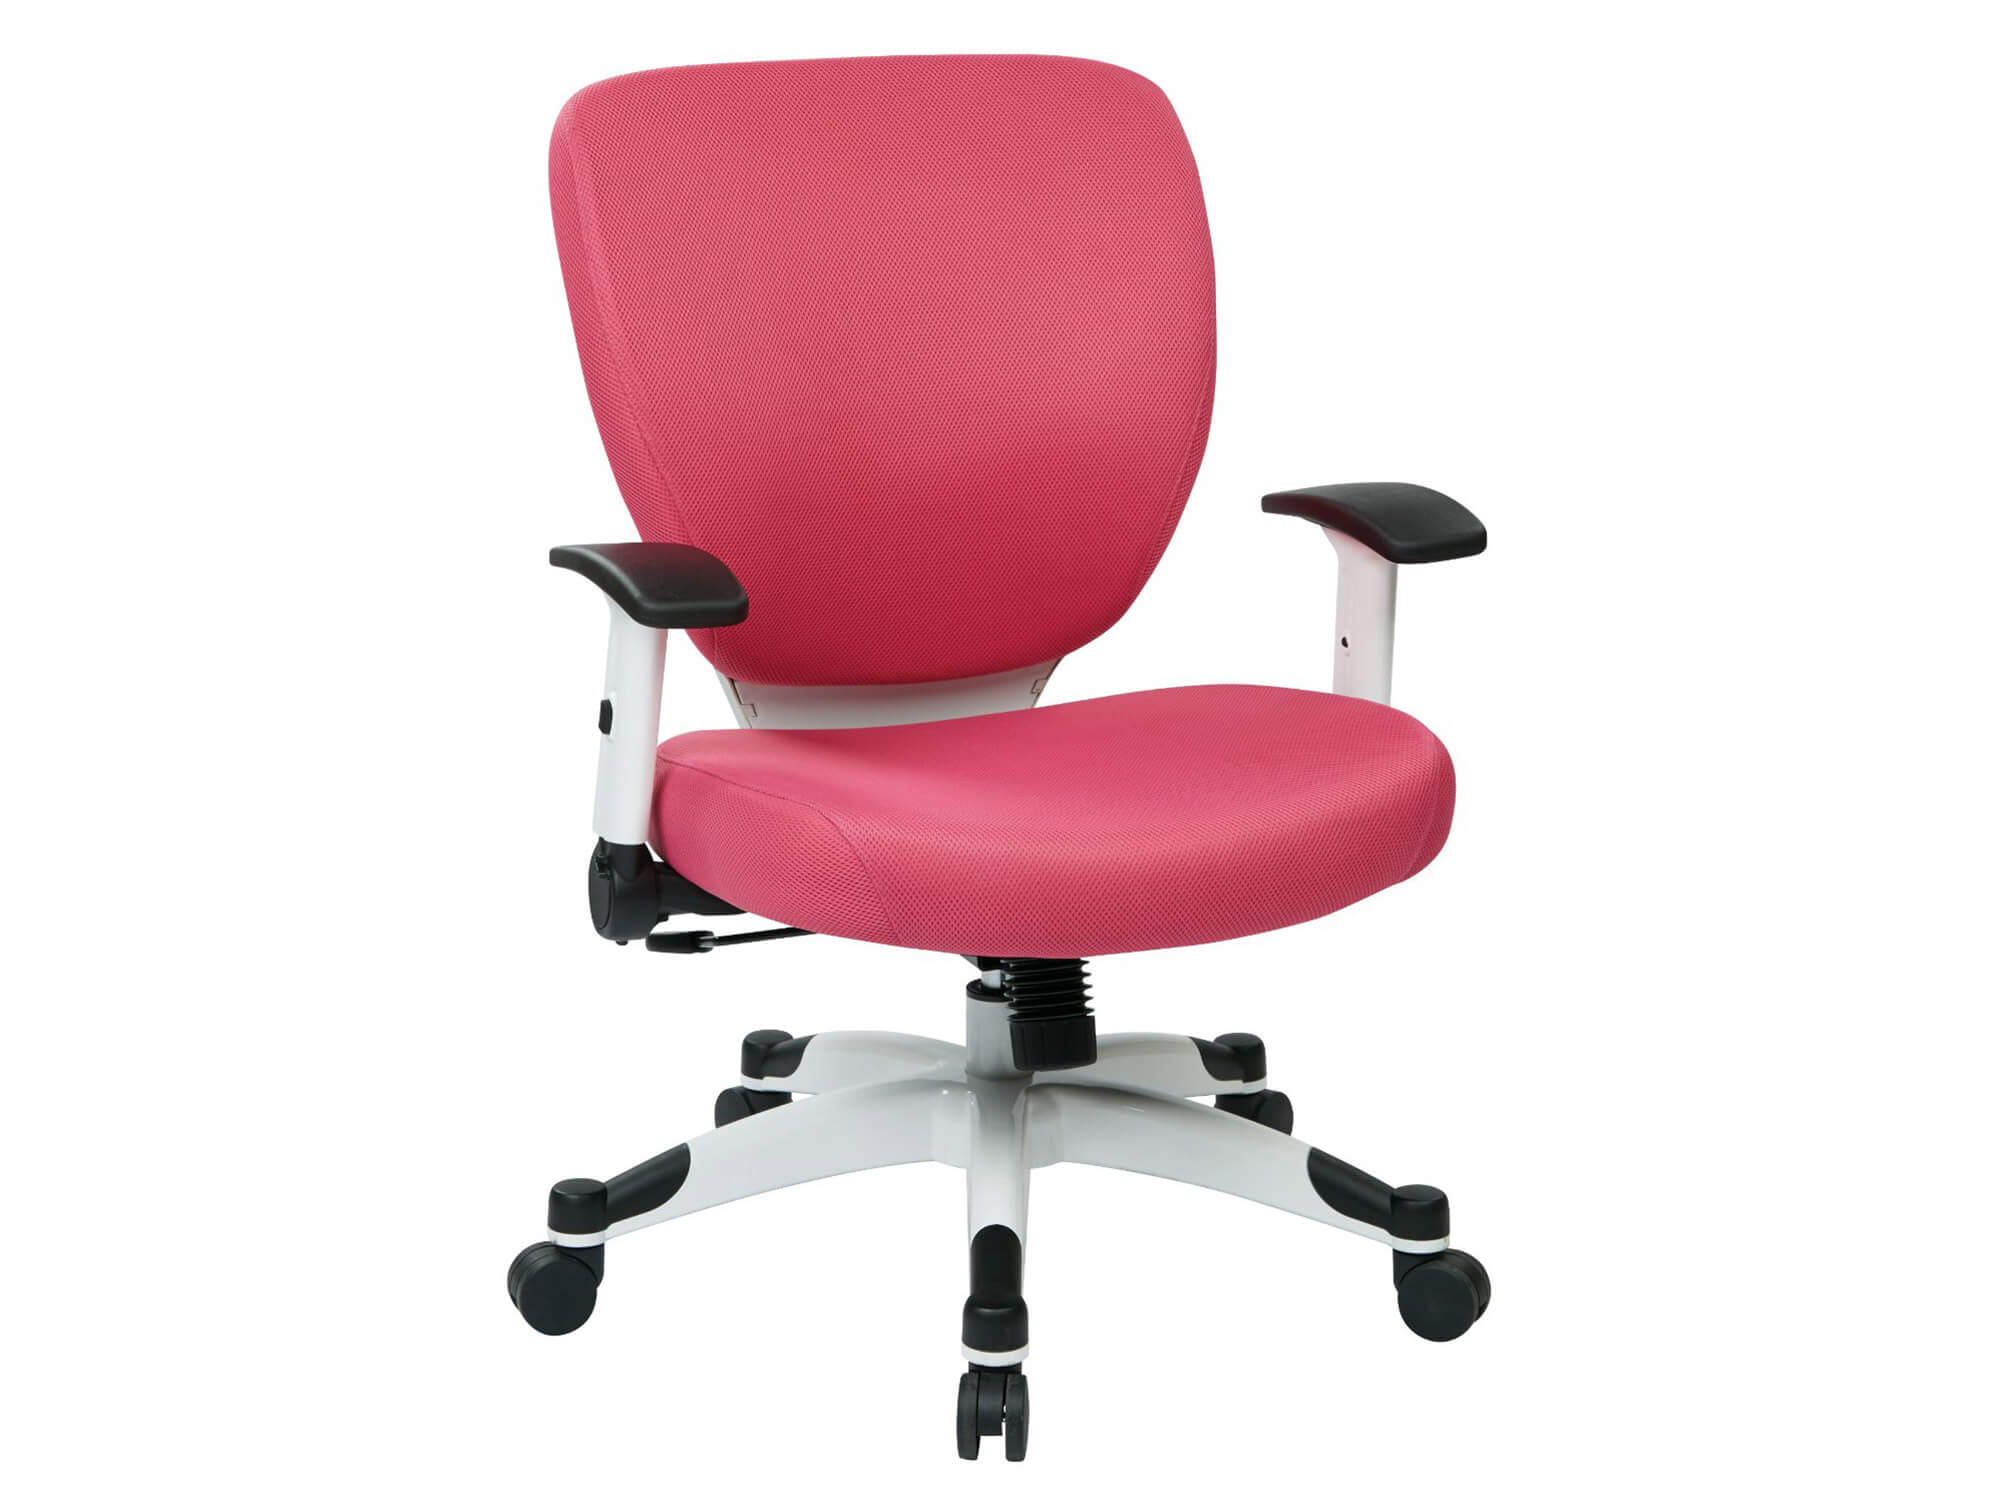 Office task chairs CUB 5200W 261 PSO